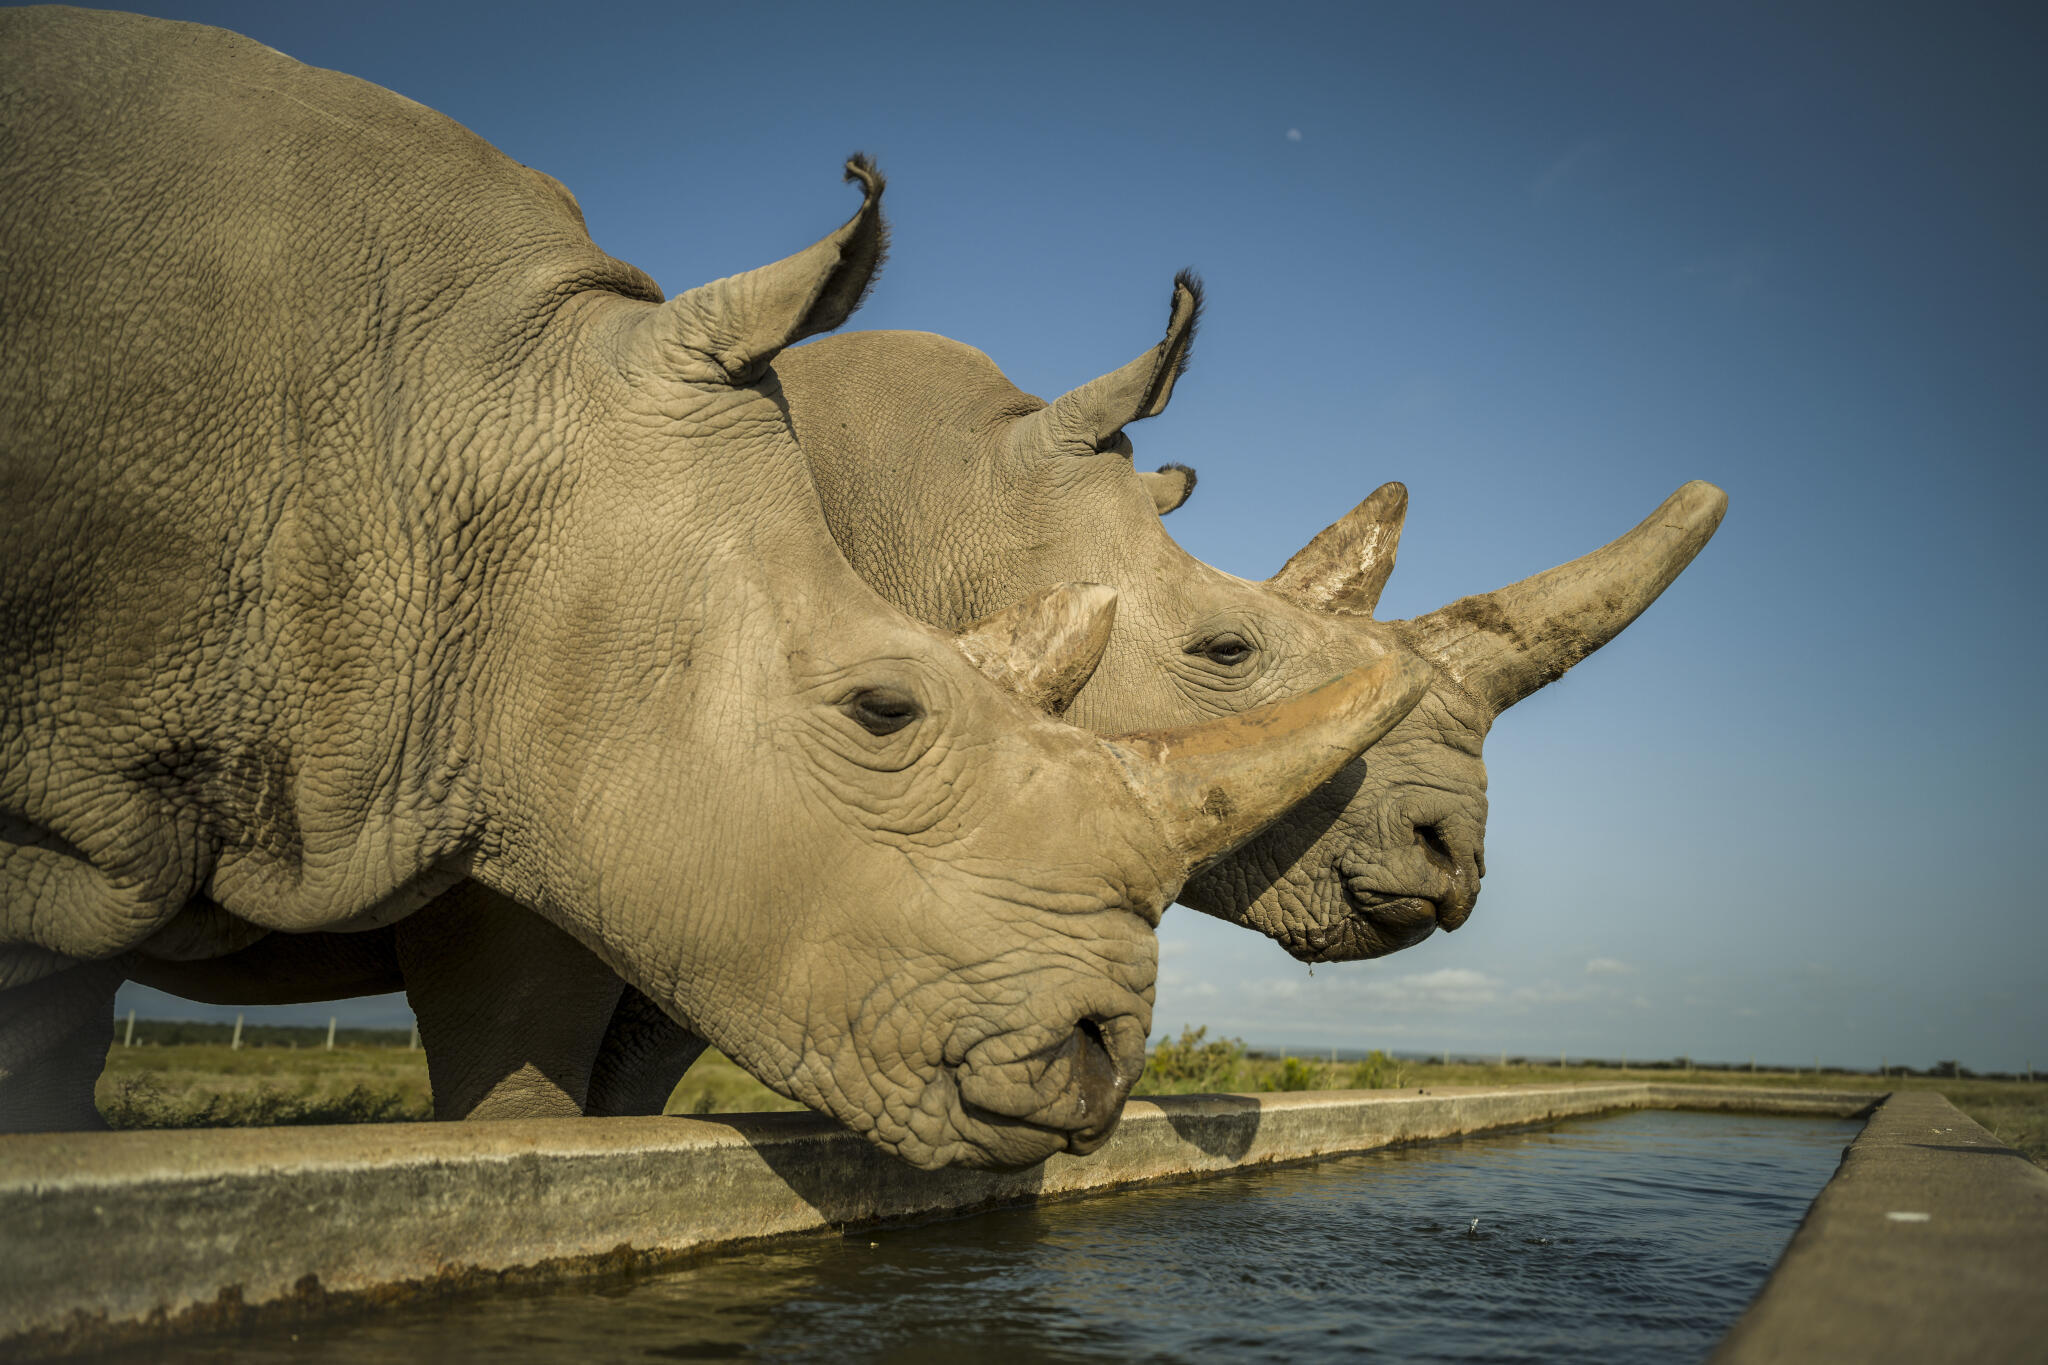 Najin (L) and Fatu (R) are the last two northen white rhinos in the world. The two female rhinos at the Ol Pejeta conservancy in Kenya.